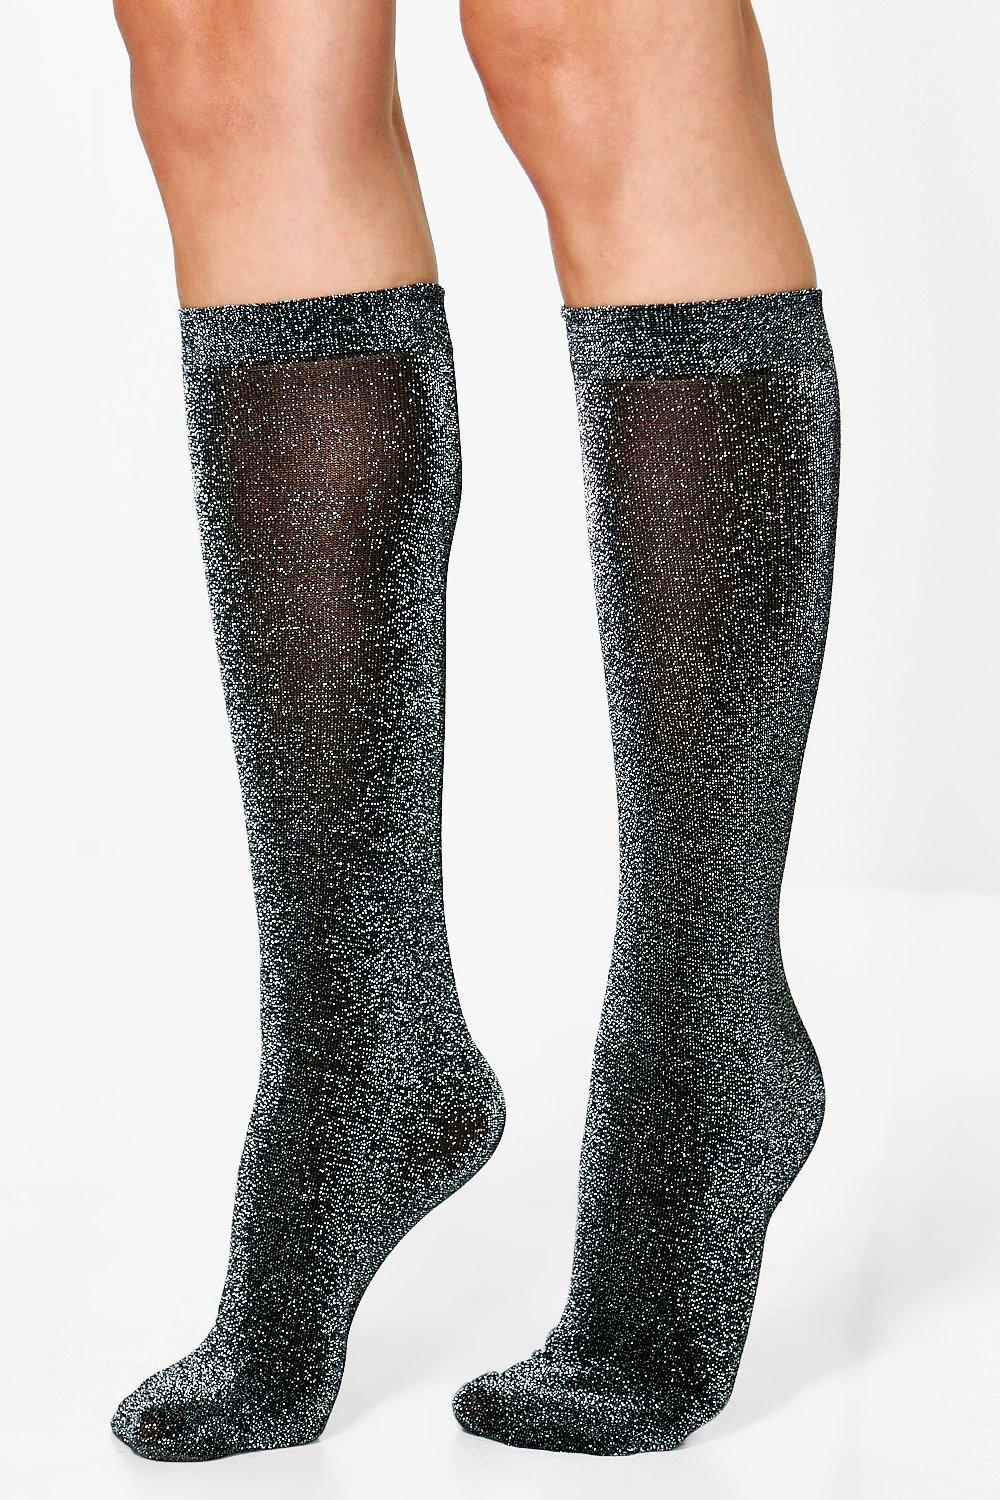 Macy Glitter Shimmer Knee High Socks